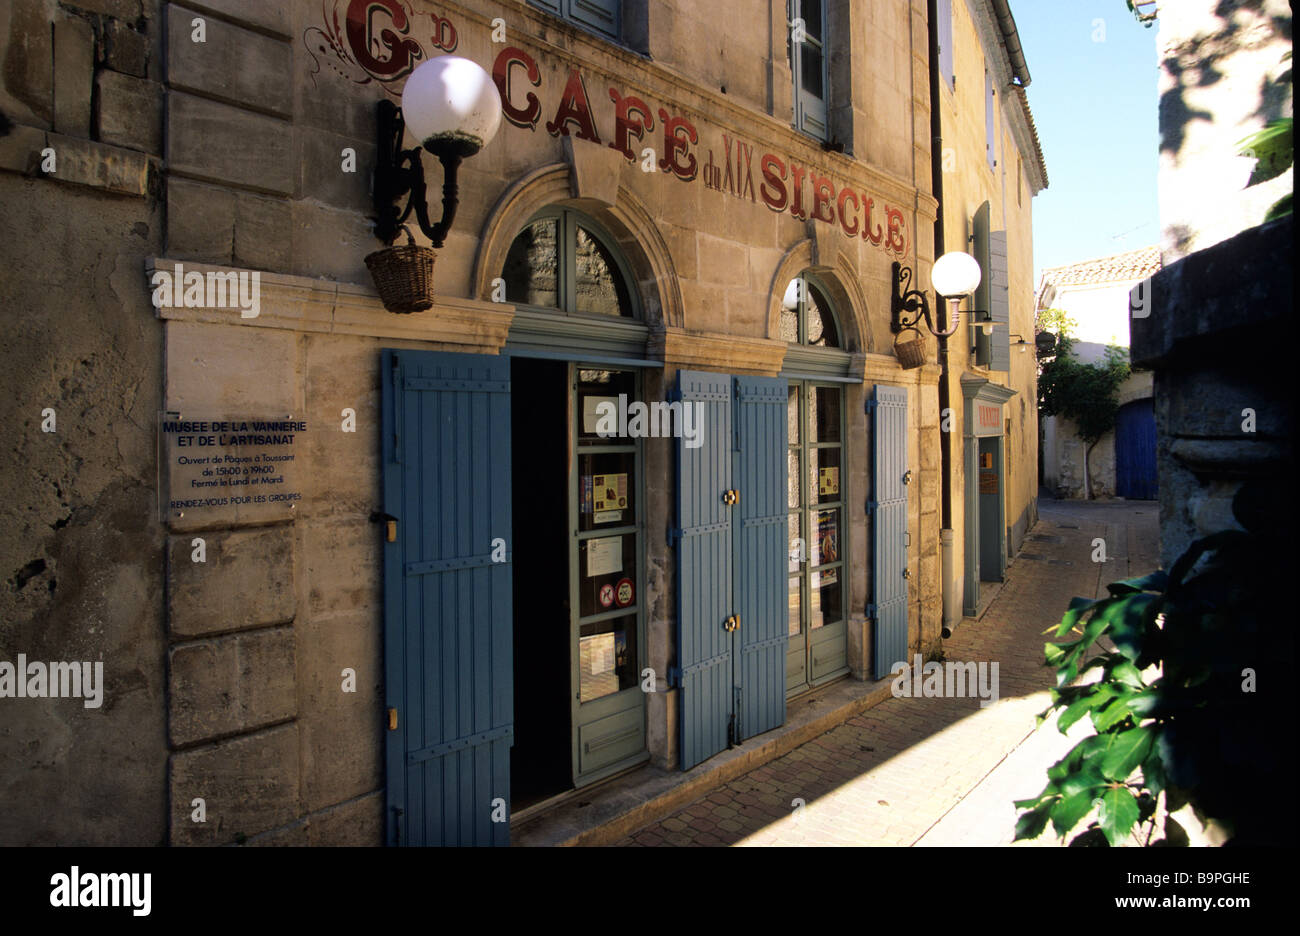 France, Gard, Vallabregues, Basket Weaving and Crafts Museum - Stock Image